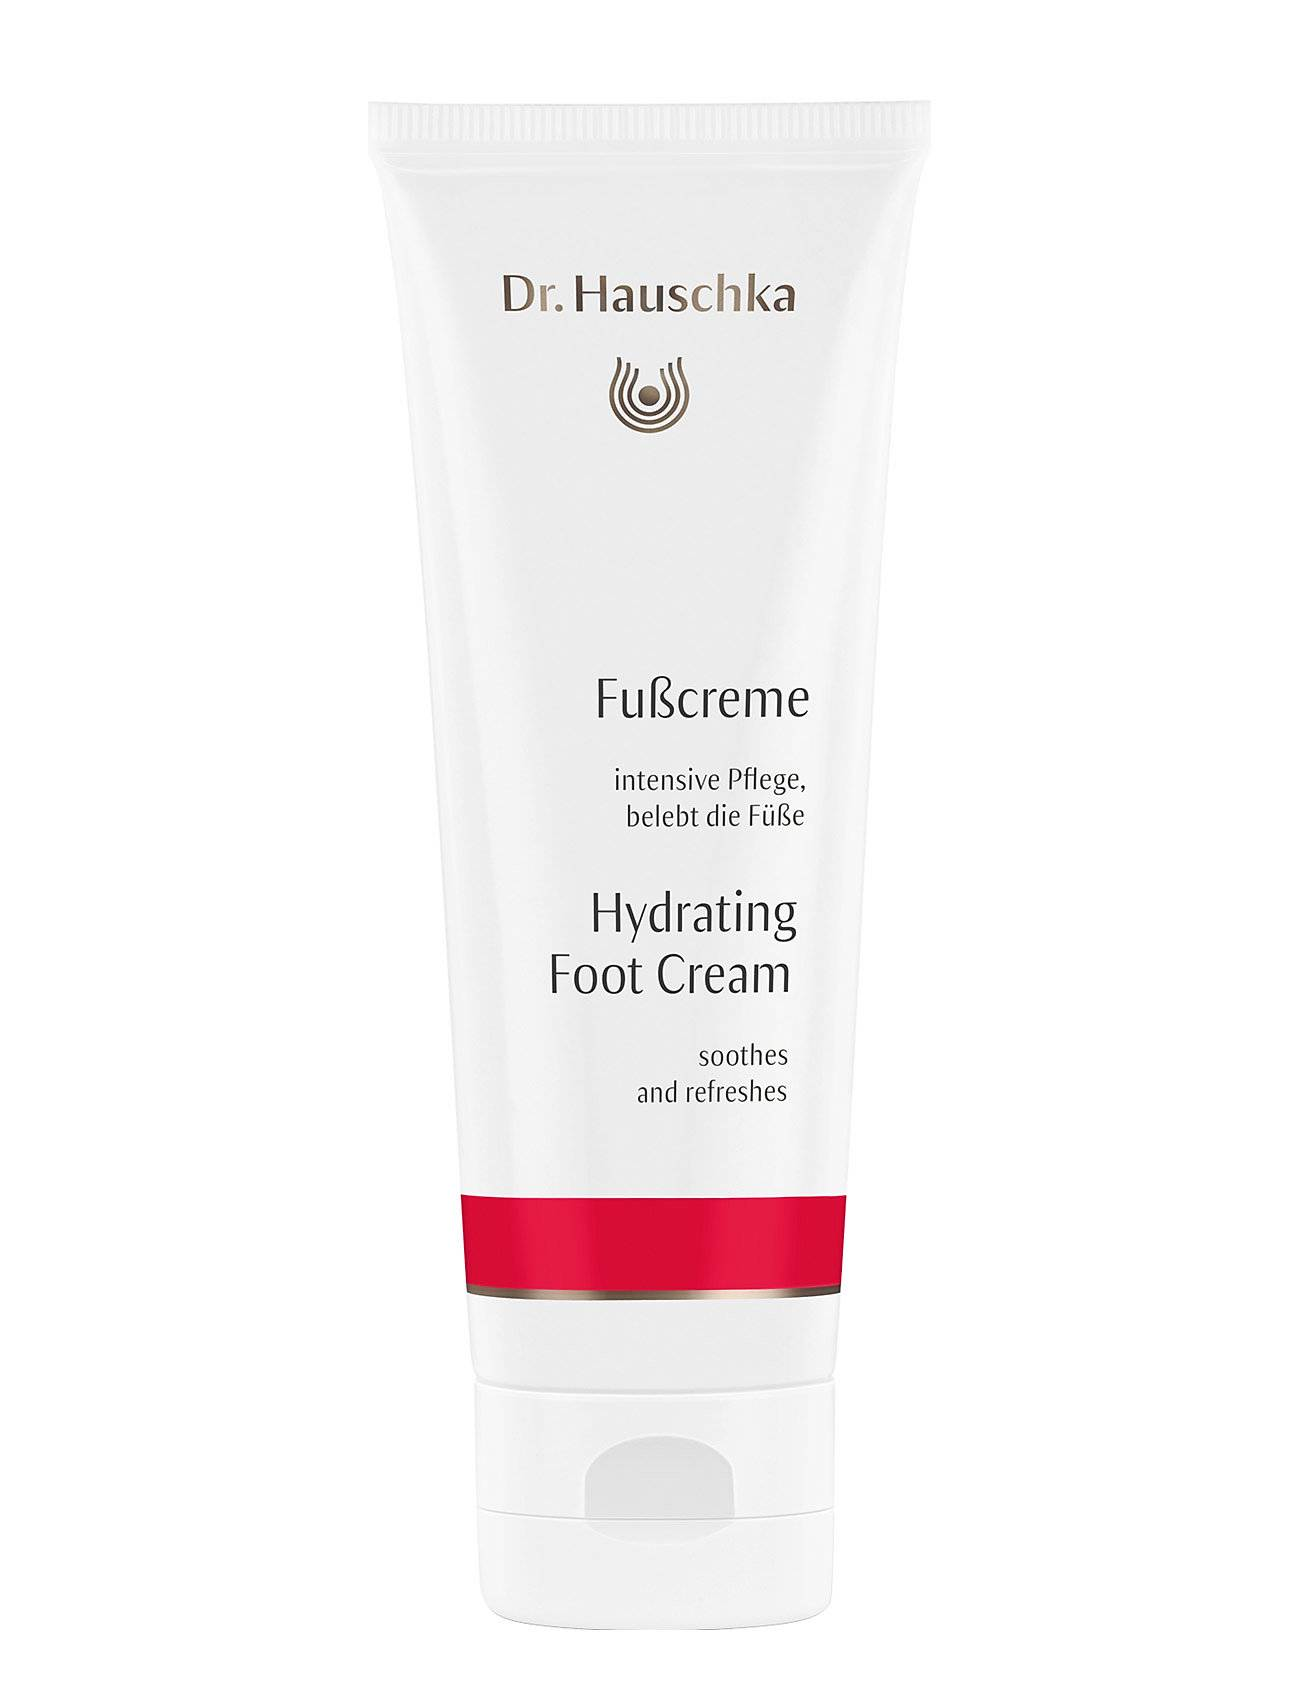 Dr. Hauschka Hydrating Foot Cream